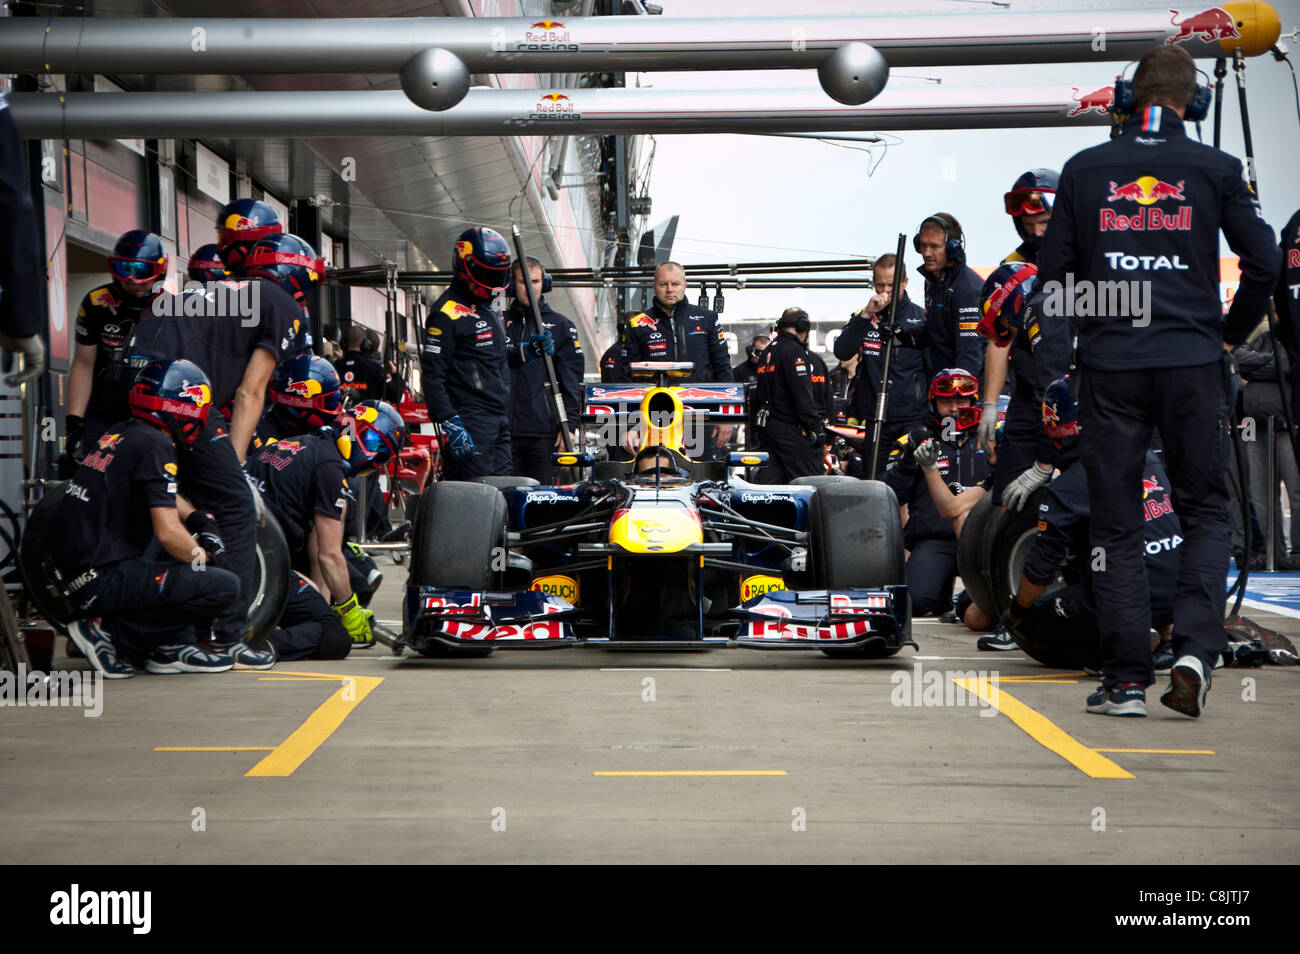 Red Bull mechanics practice pit stop ahead of British Formula One Grand Pix - Stock Image